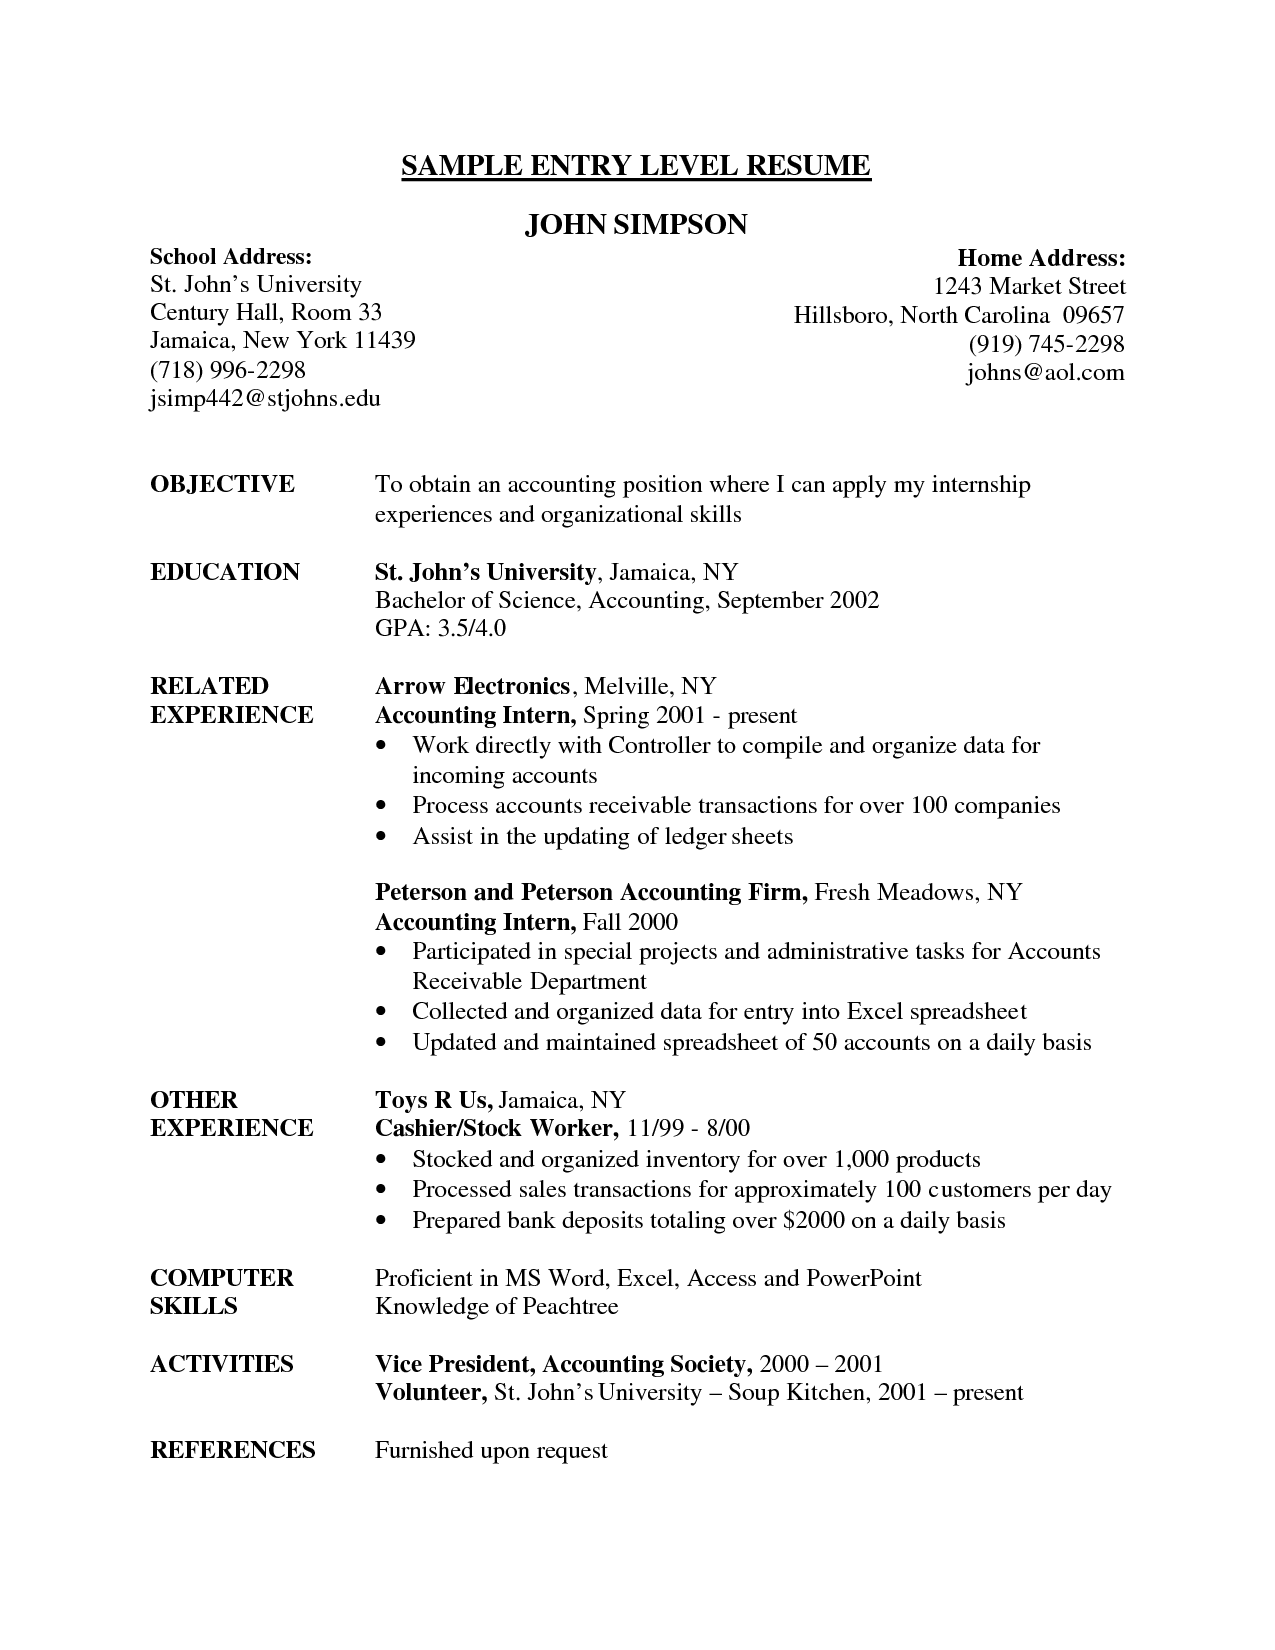 Example Of Resume Profile Entry Level   Http://www.resumecareer.info/example  Of Resume Profile Entry Level 7/